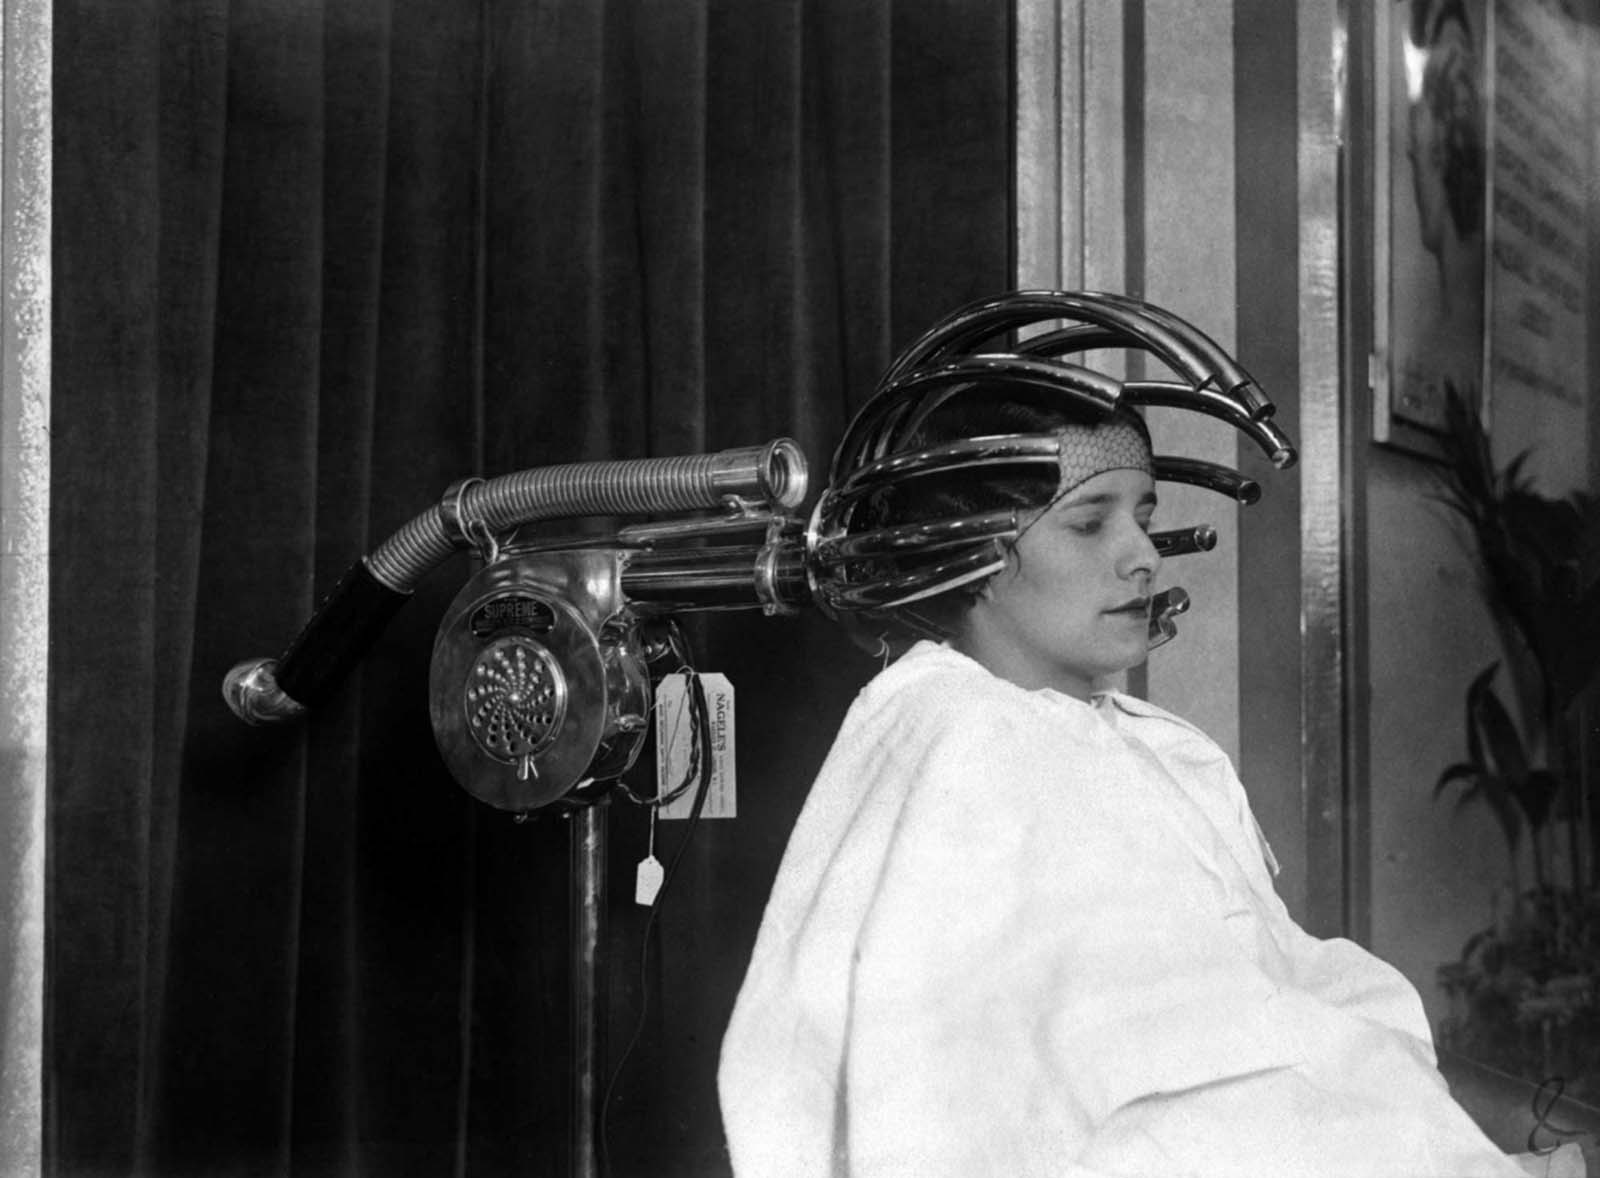 In 1890 the first hairdryer was invented by French stylist Alexander Godefroy.